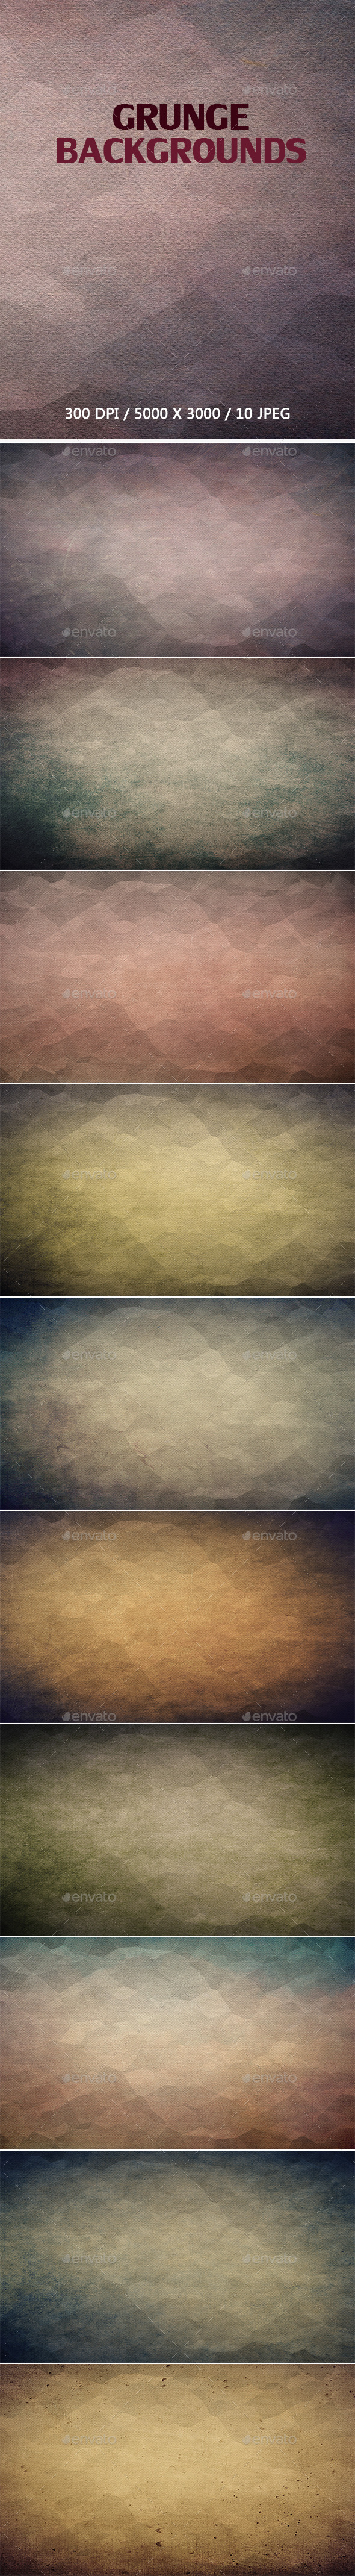 GraphicRiver Grunge Backgrounds 9638186